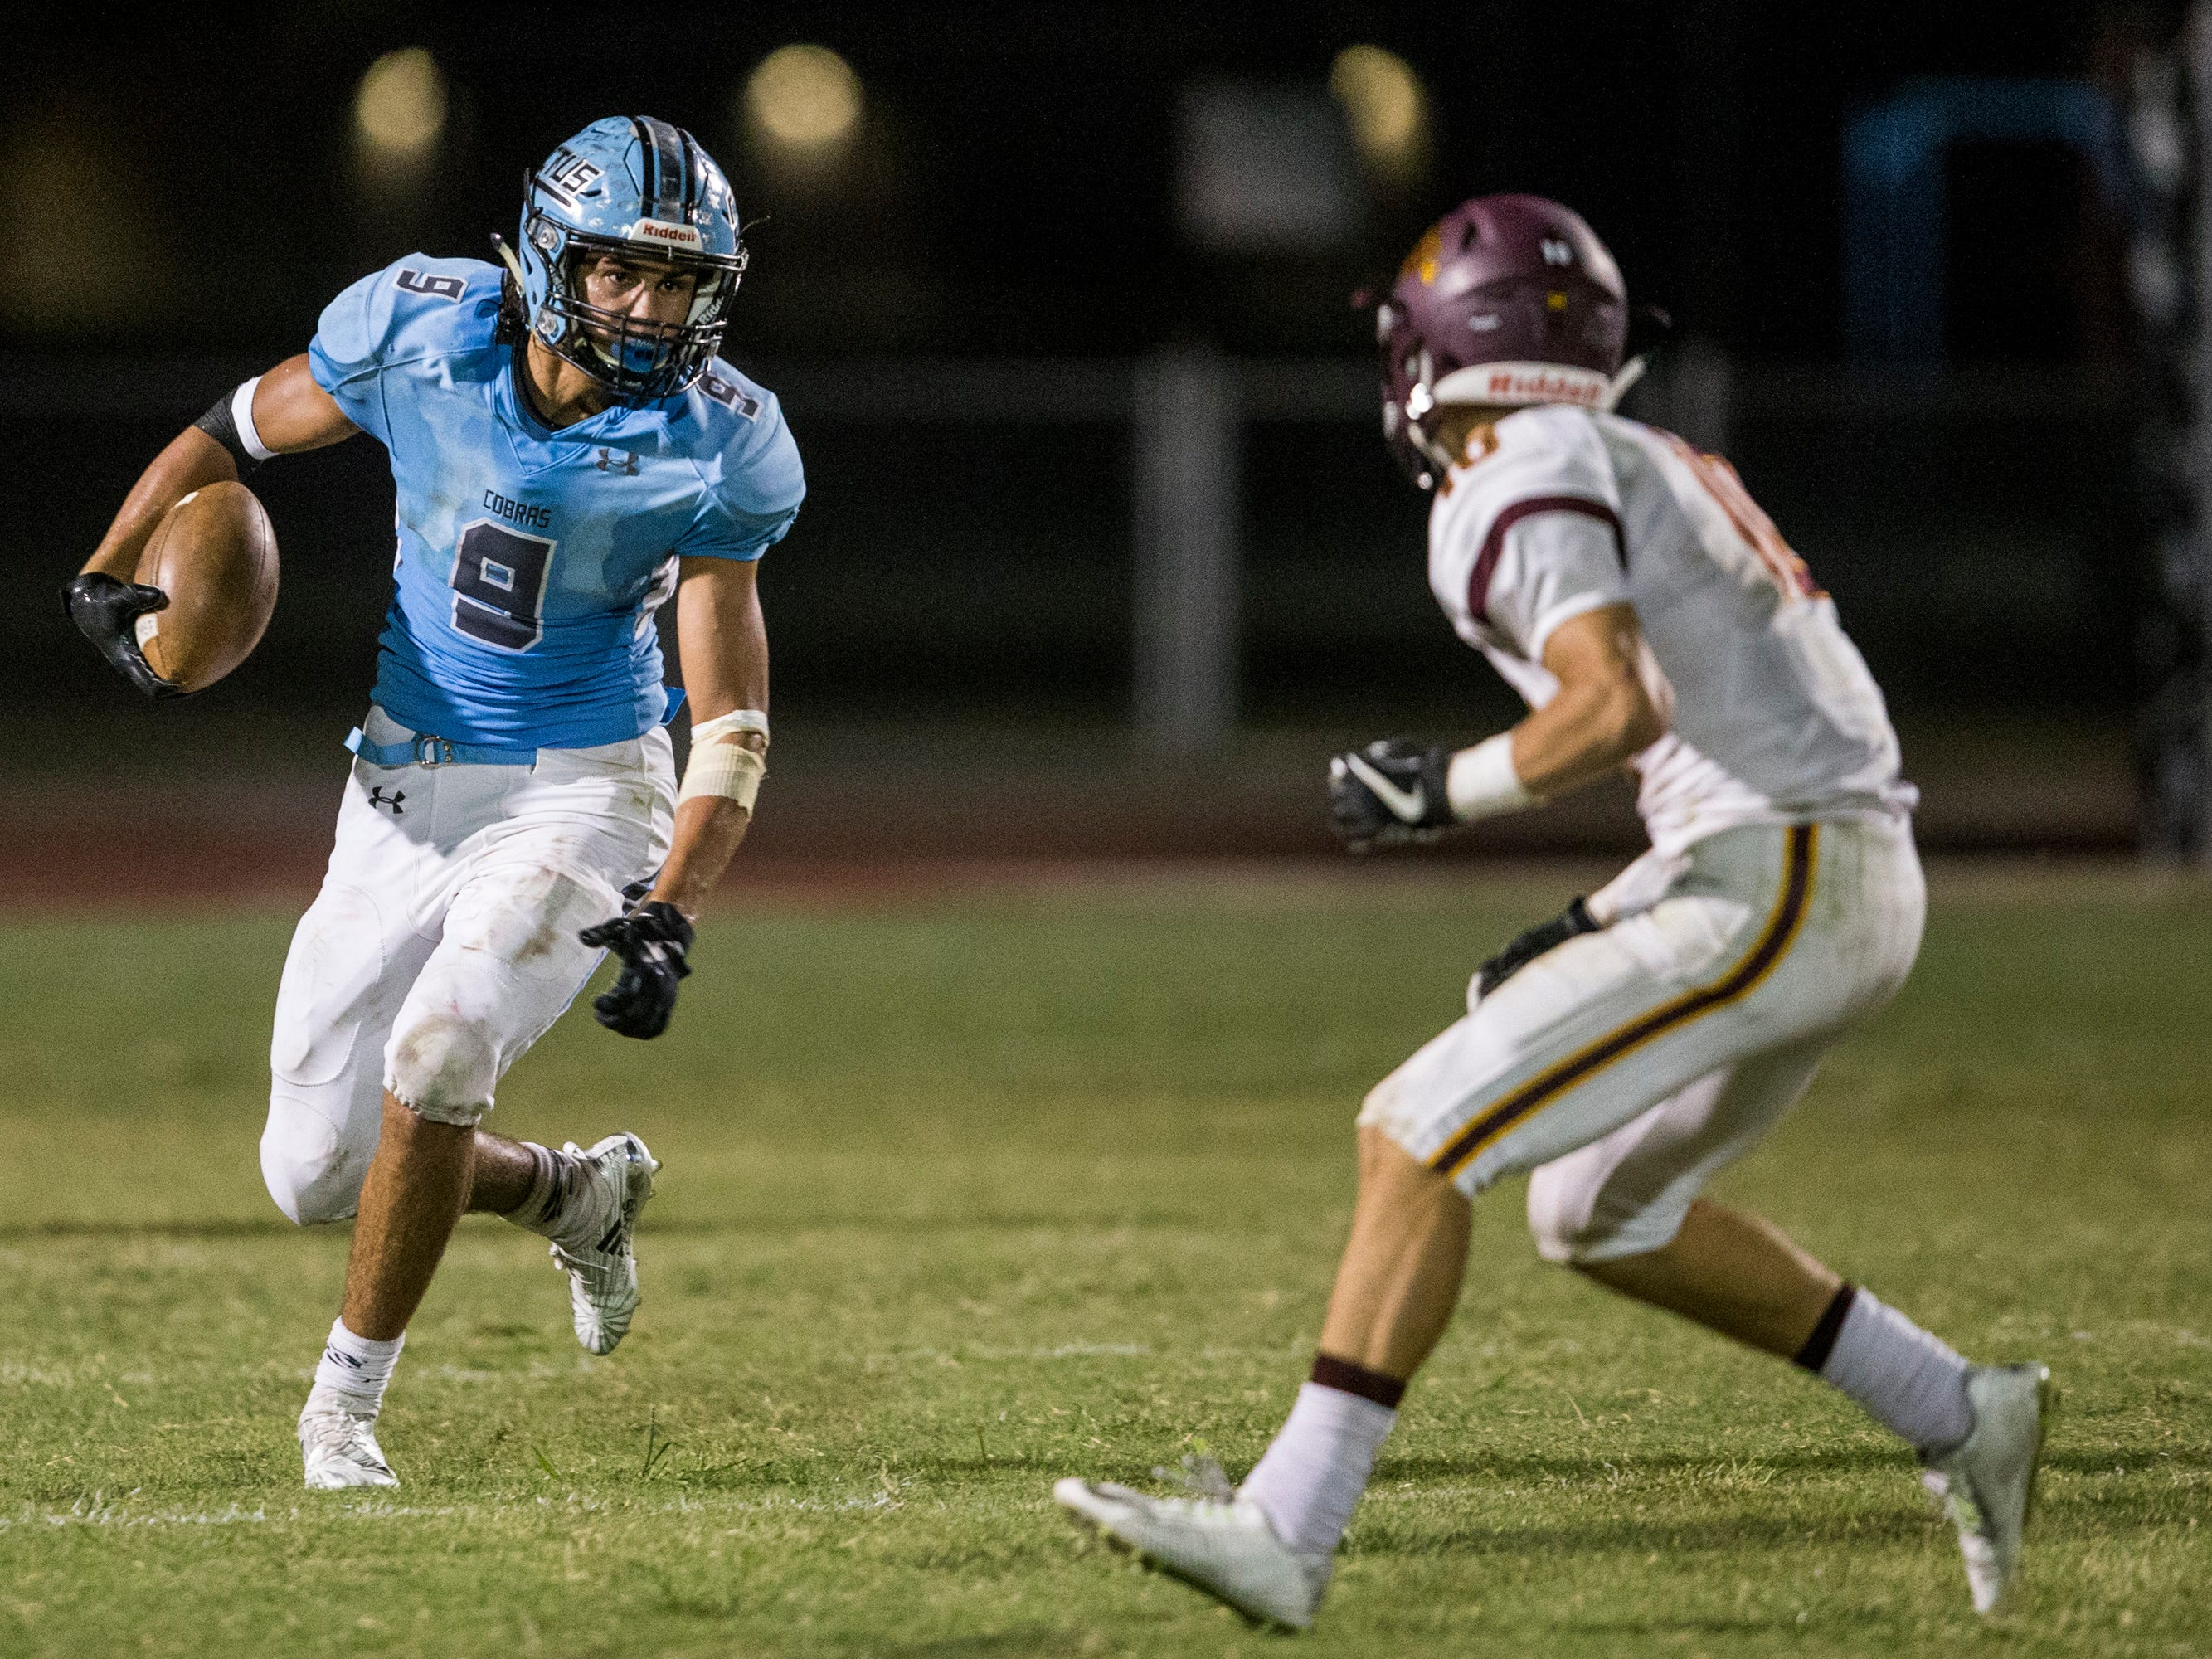 Cactus' Zach Cullop rushes against Salpointe in the 3rd quarter on Friday, Sept. 14, 2018, at Cactus High School in Glendale, Ariz.